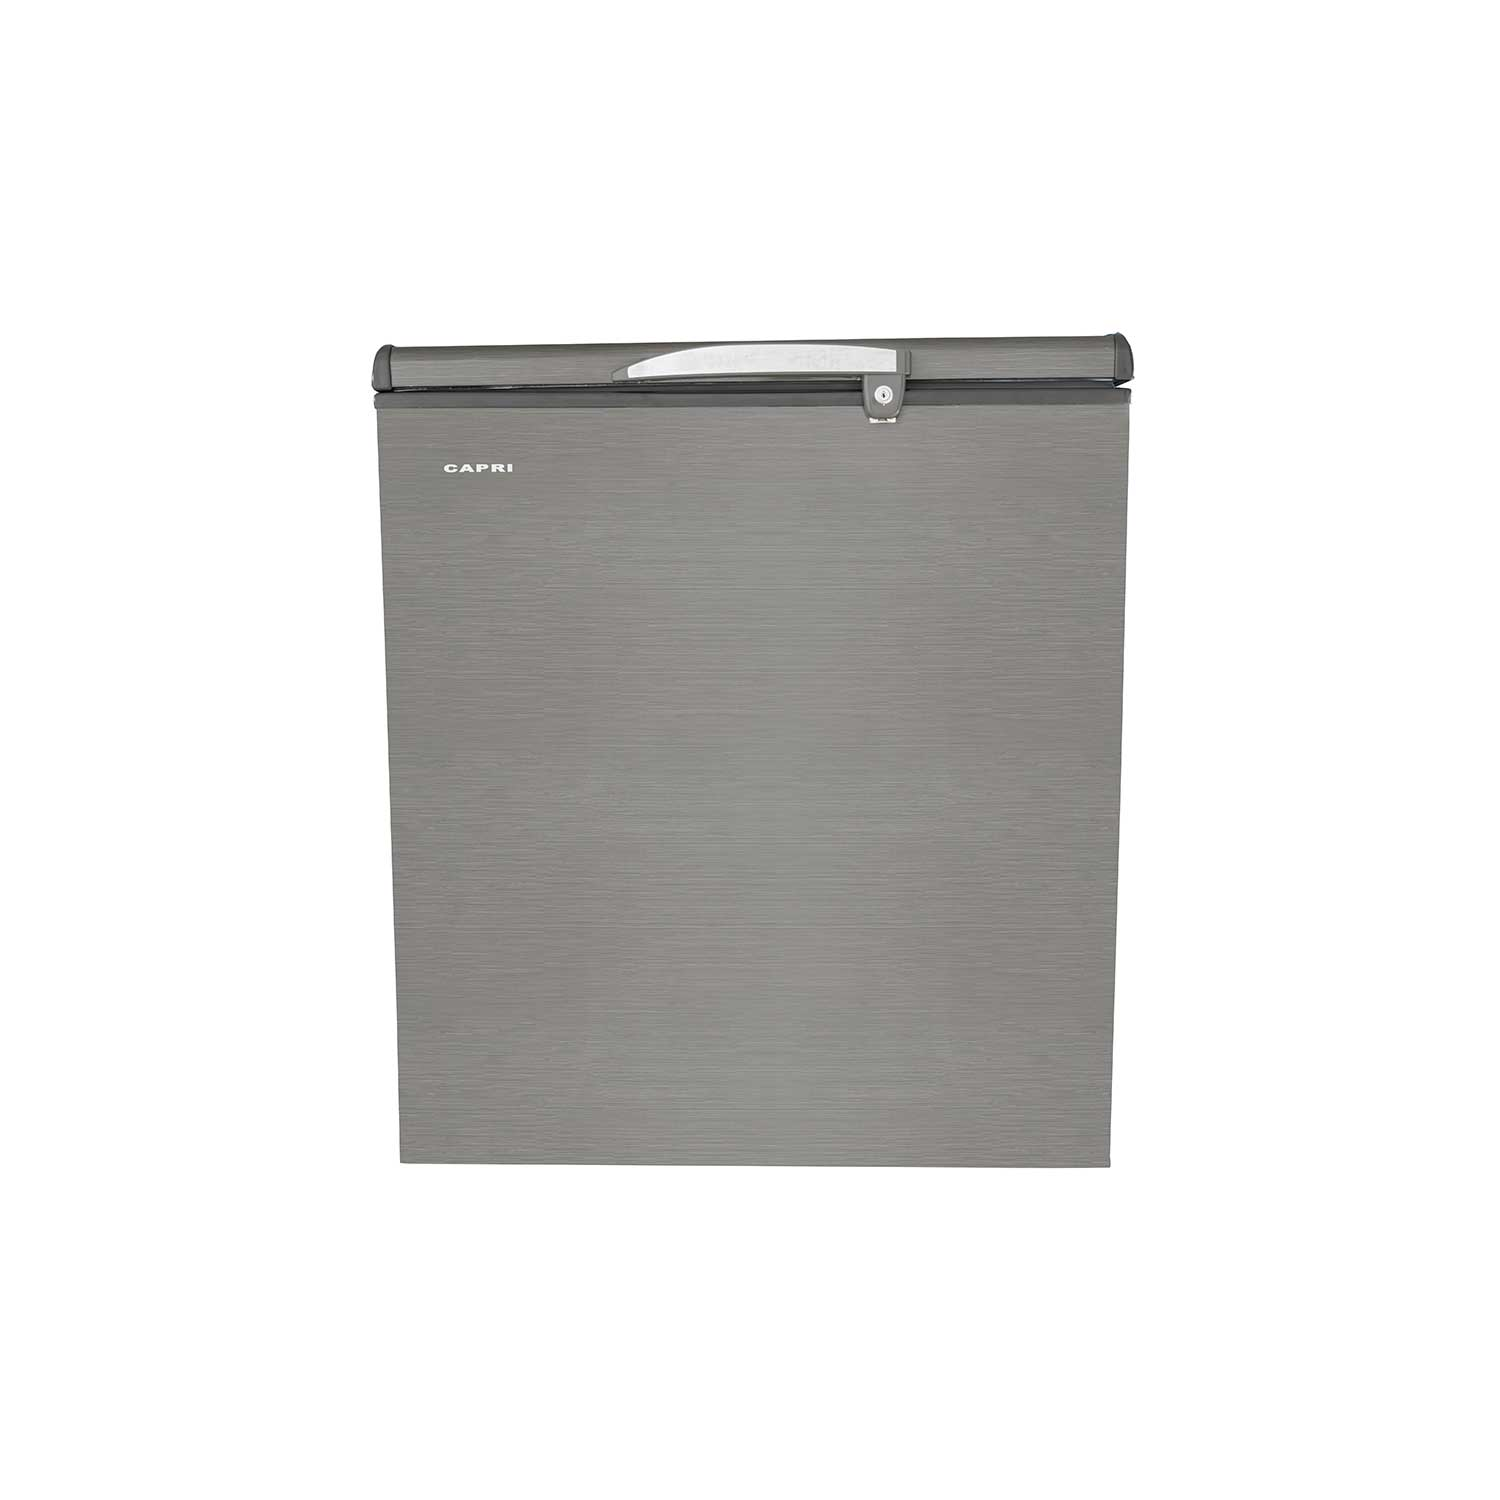 CAPRI 210L RELIABLE CHEST FREEZER